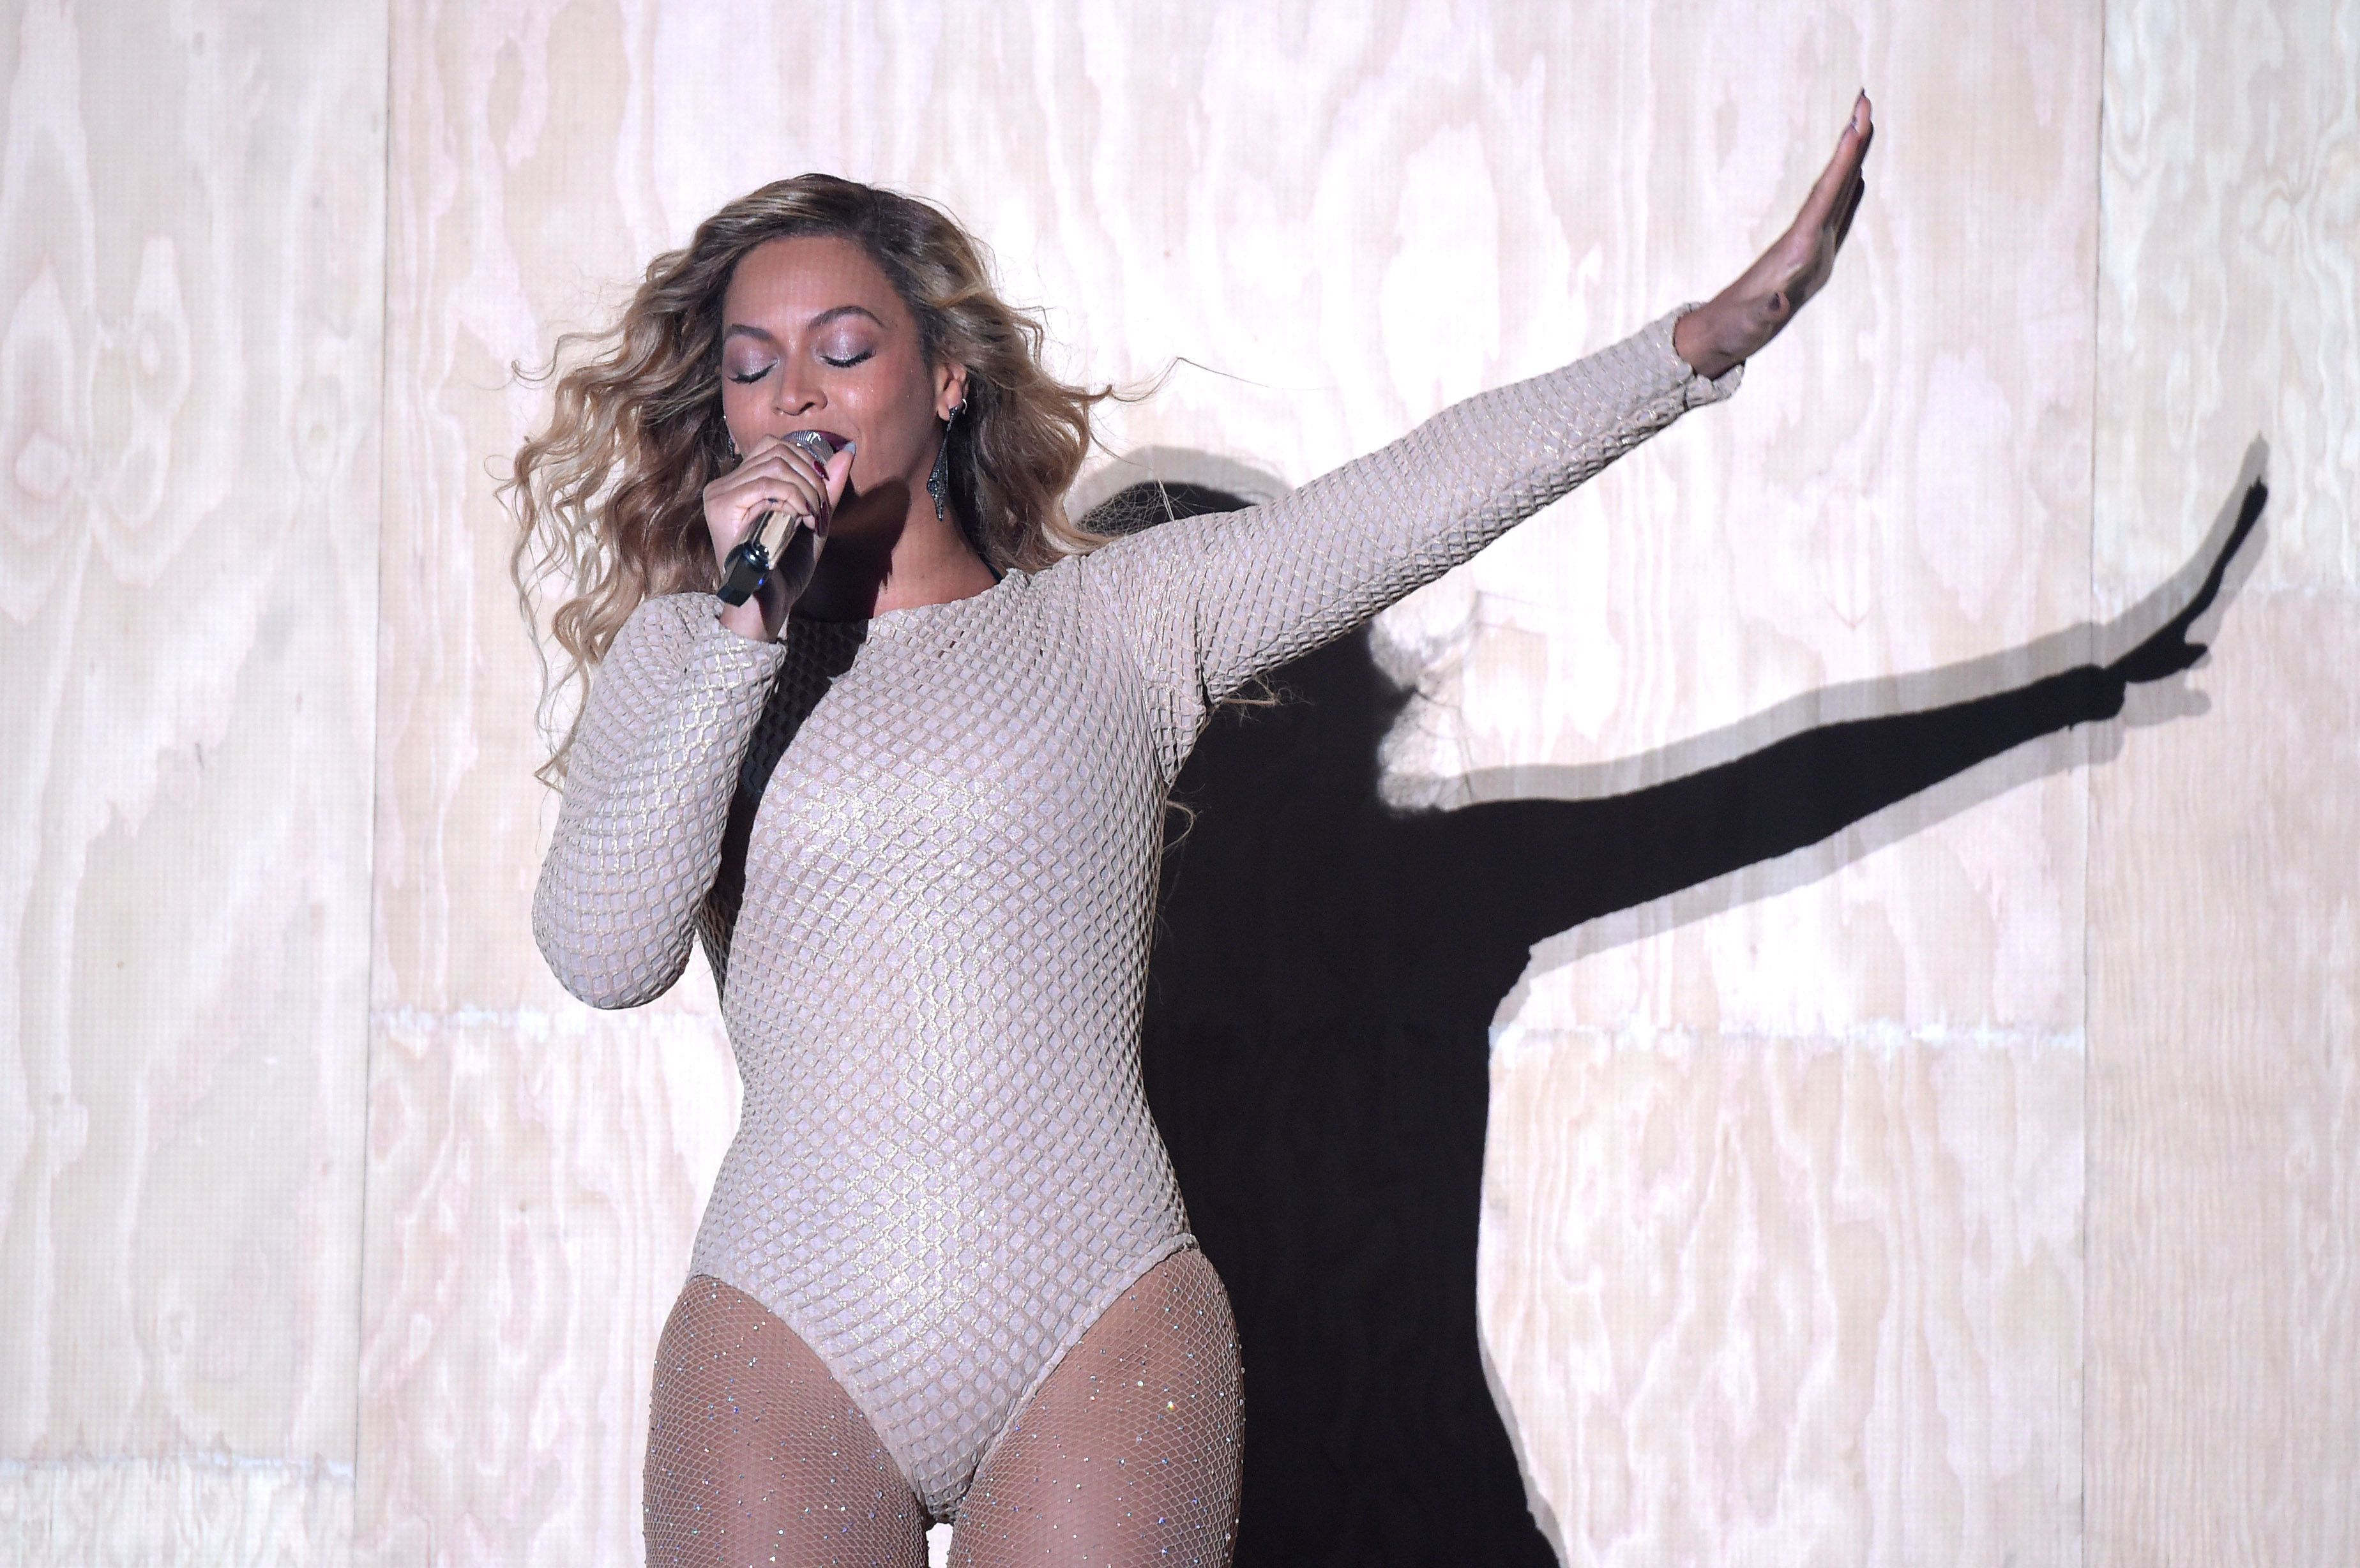 NEW YORK, NY - SEPTEMBER 26:  Beyonce performs onstage during 2015 Global Citizen Festival to end extreme poverty by 2030 in Central Park on September 26, 2015 in New York City.  (Photo by Theo Wargo/Getty Images for Global Citizen)